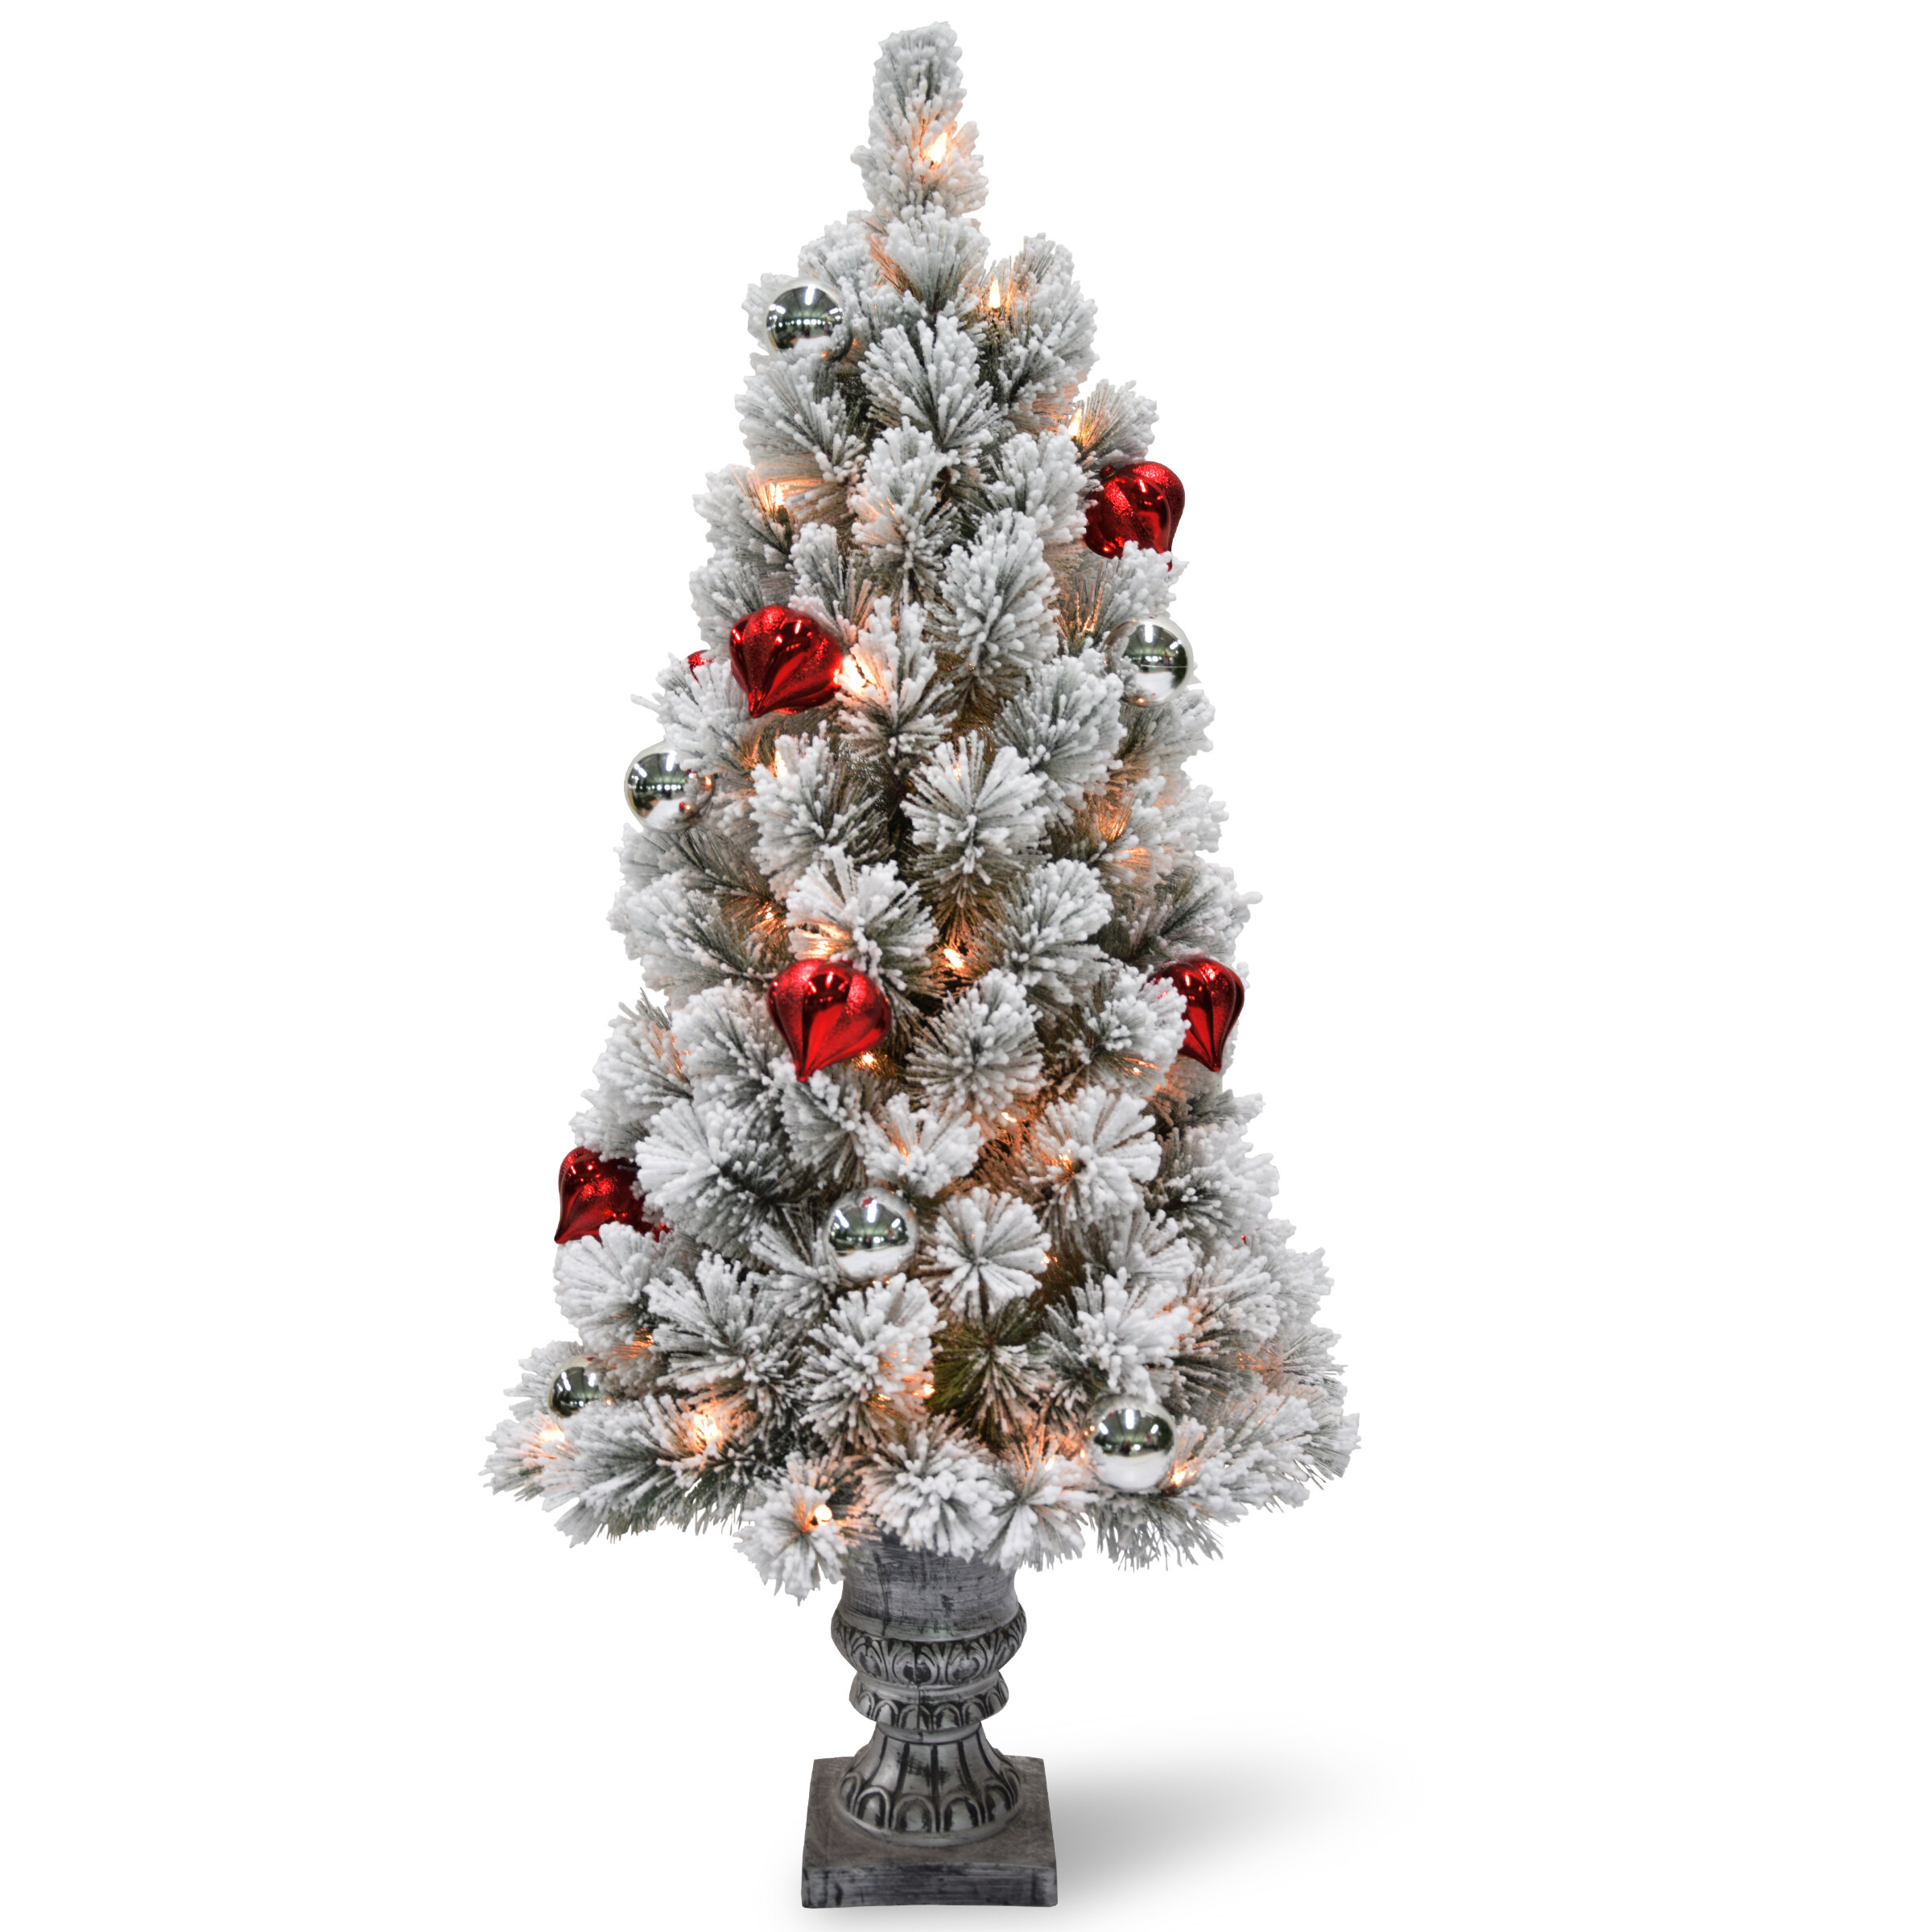 The Holiday Aisle Snowy Bristle Tabletop 2' White/Green Pine Trees Artificial Christmas Tree with 35 LED Clear/White Lights & Reviews | Wayfair